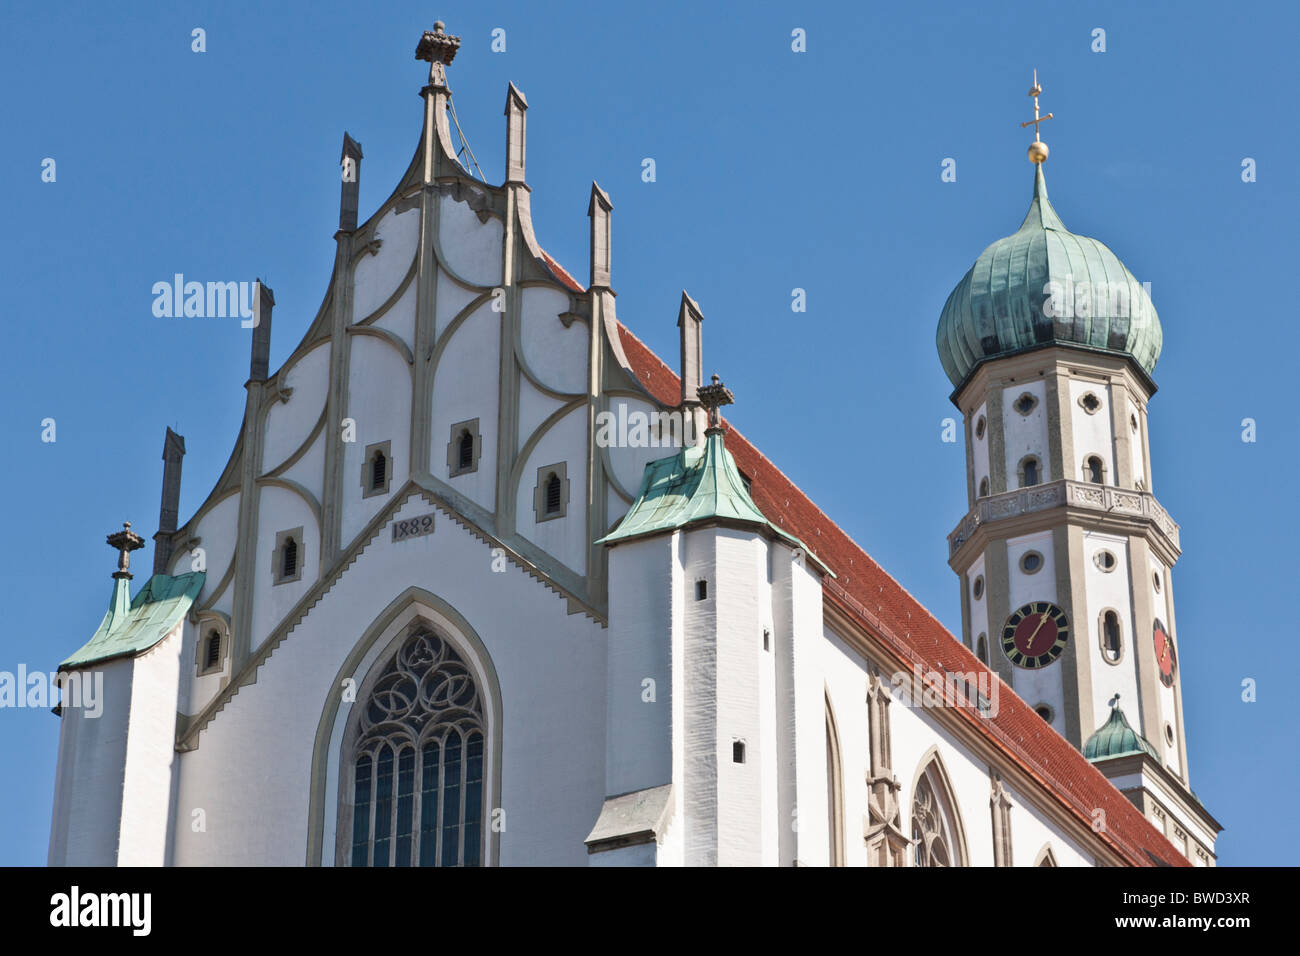 ST. ULRICH UND AFRA CHURCH, CATHEDRAL, LATE-GOTHIC STYLE, AUGSBURG, BAVARIA, GERMANY - Stock Image